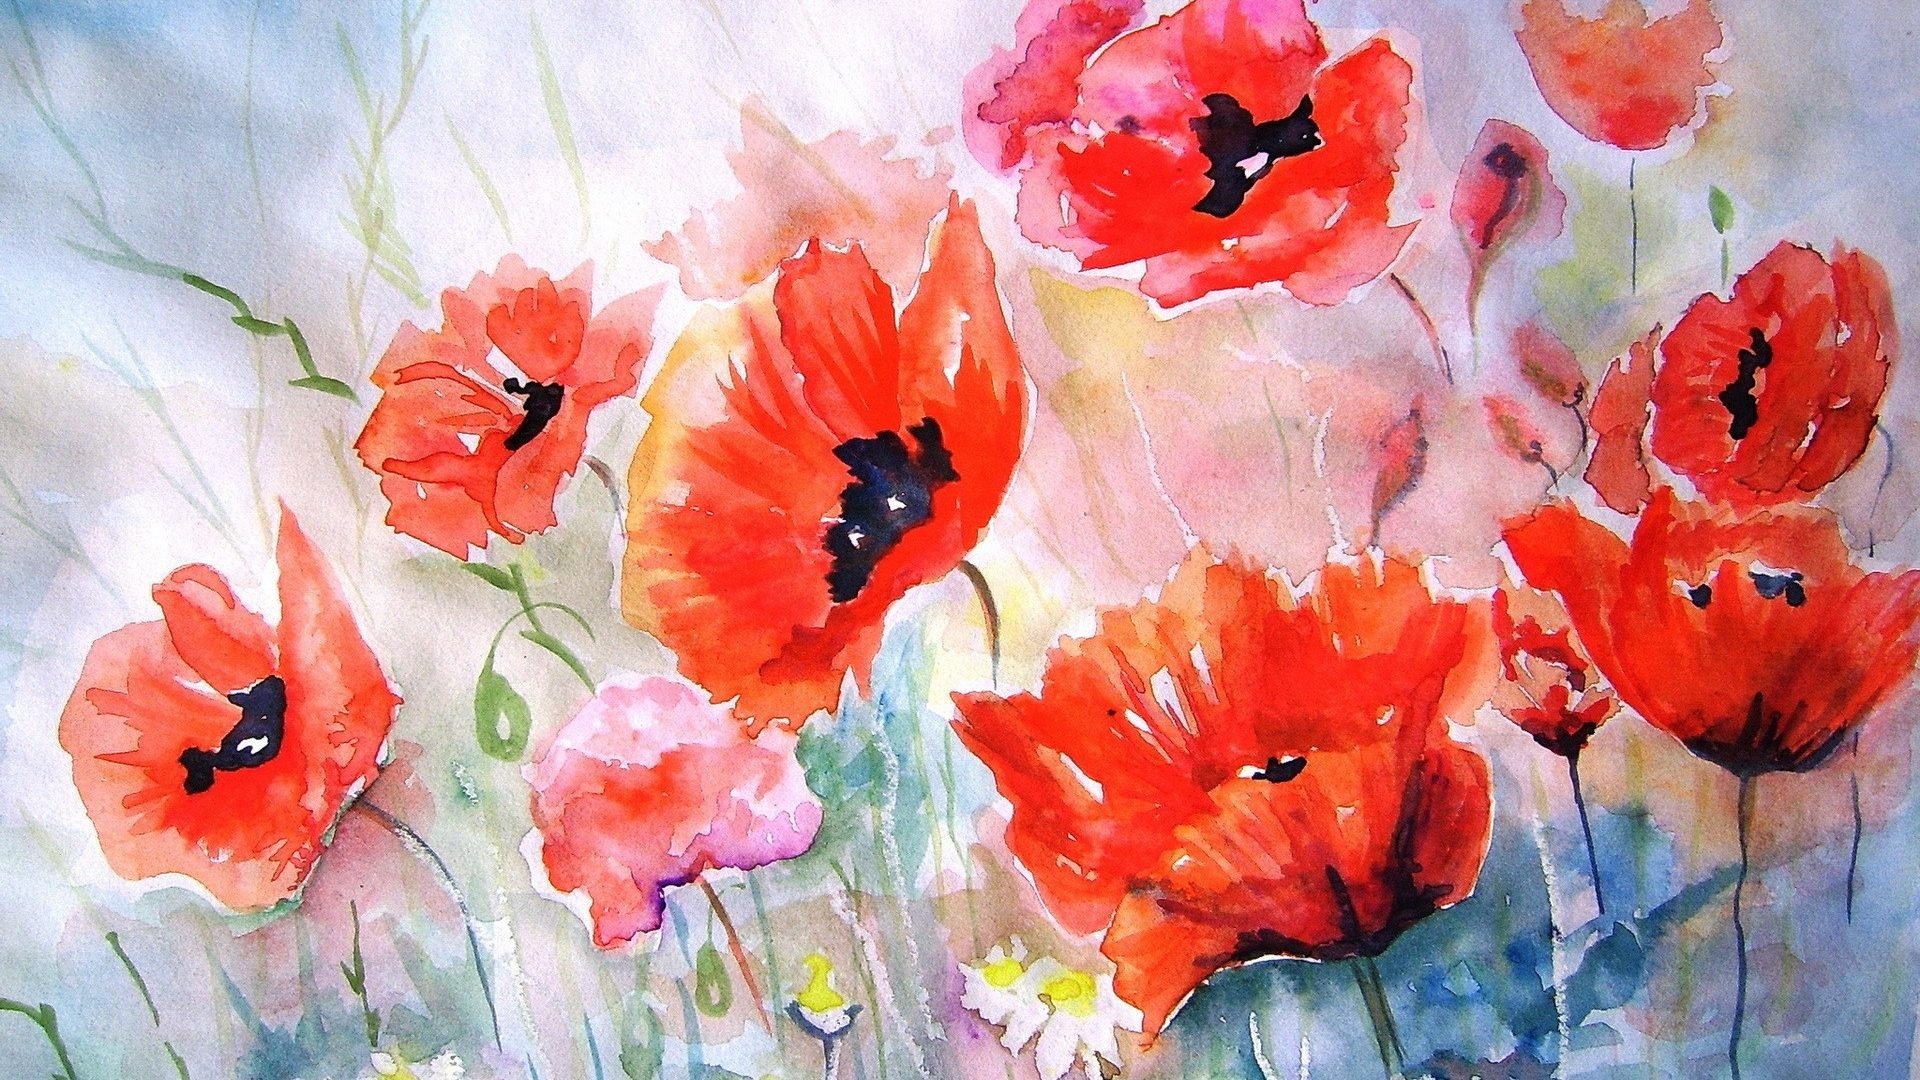 Nature Beautiful Painting Pretty Awesome Poppies Watercolor Flowers Artwork  Red Desktop Wallpaper Flower Pictures